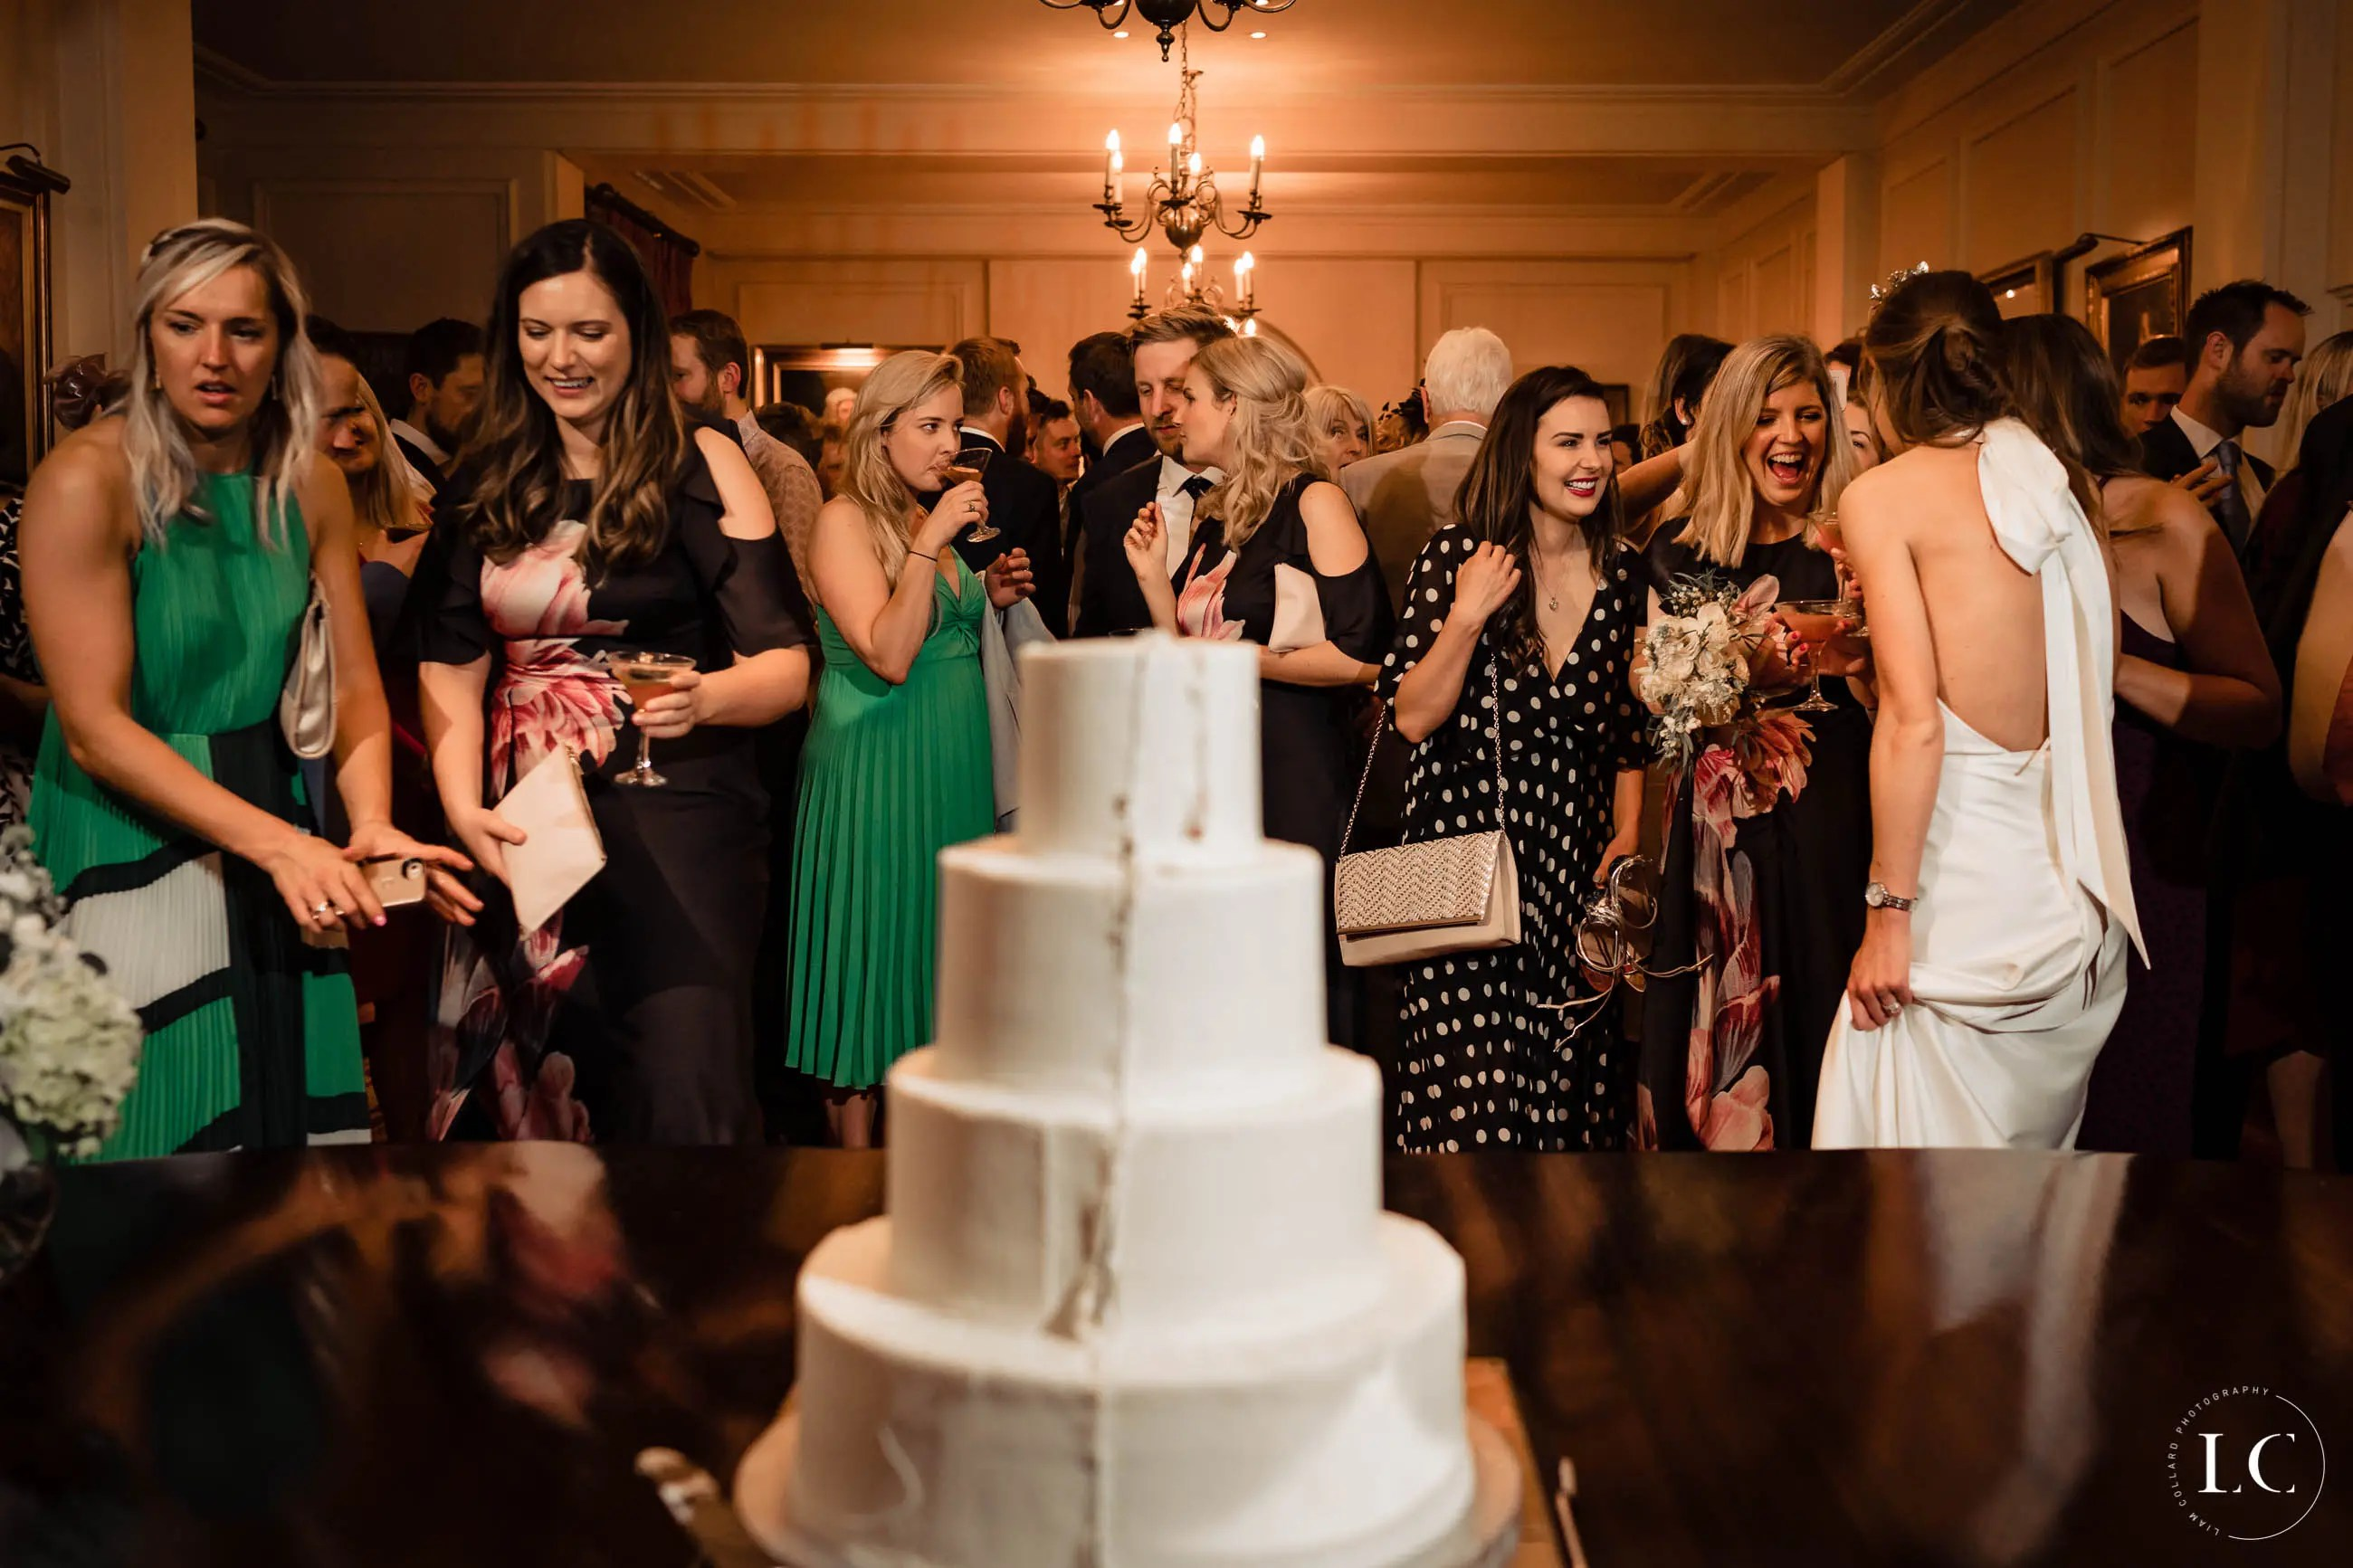 Cake and wedding guests